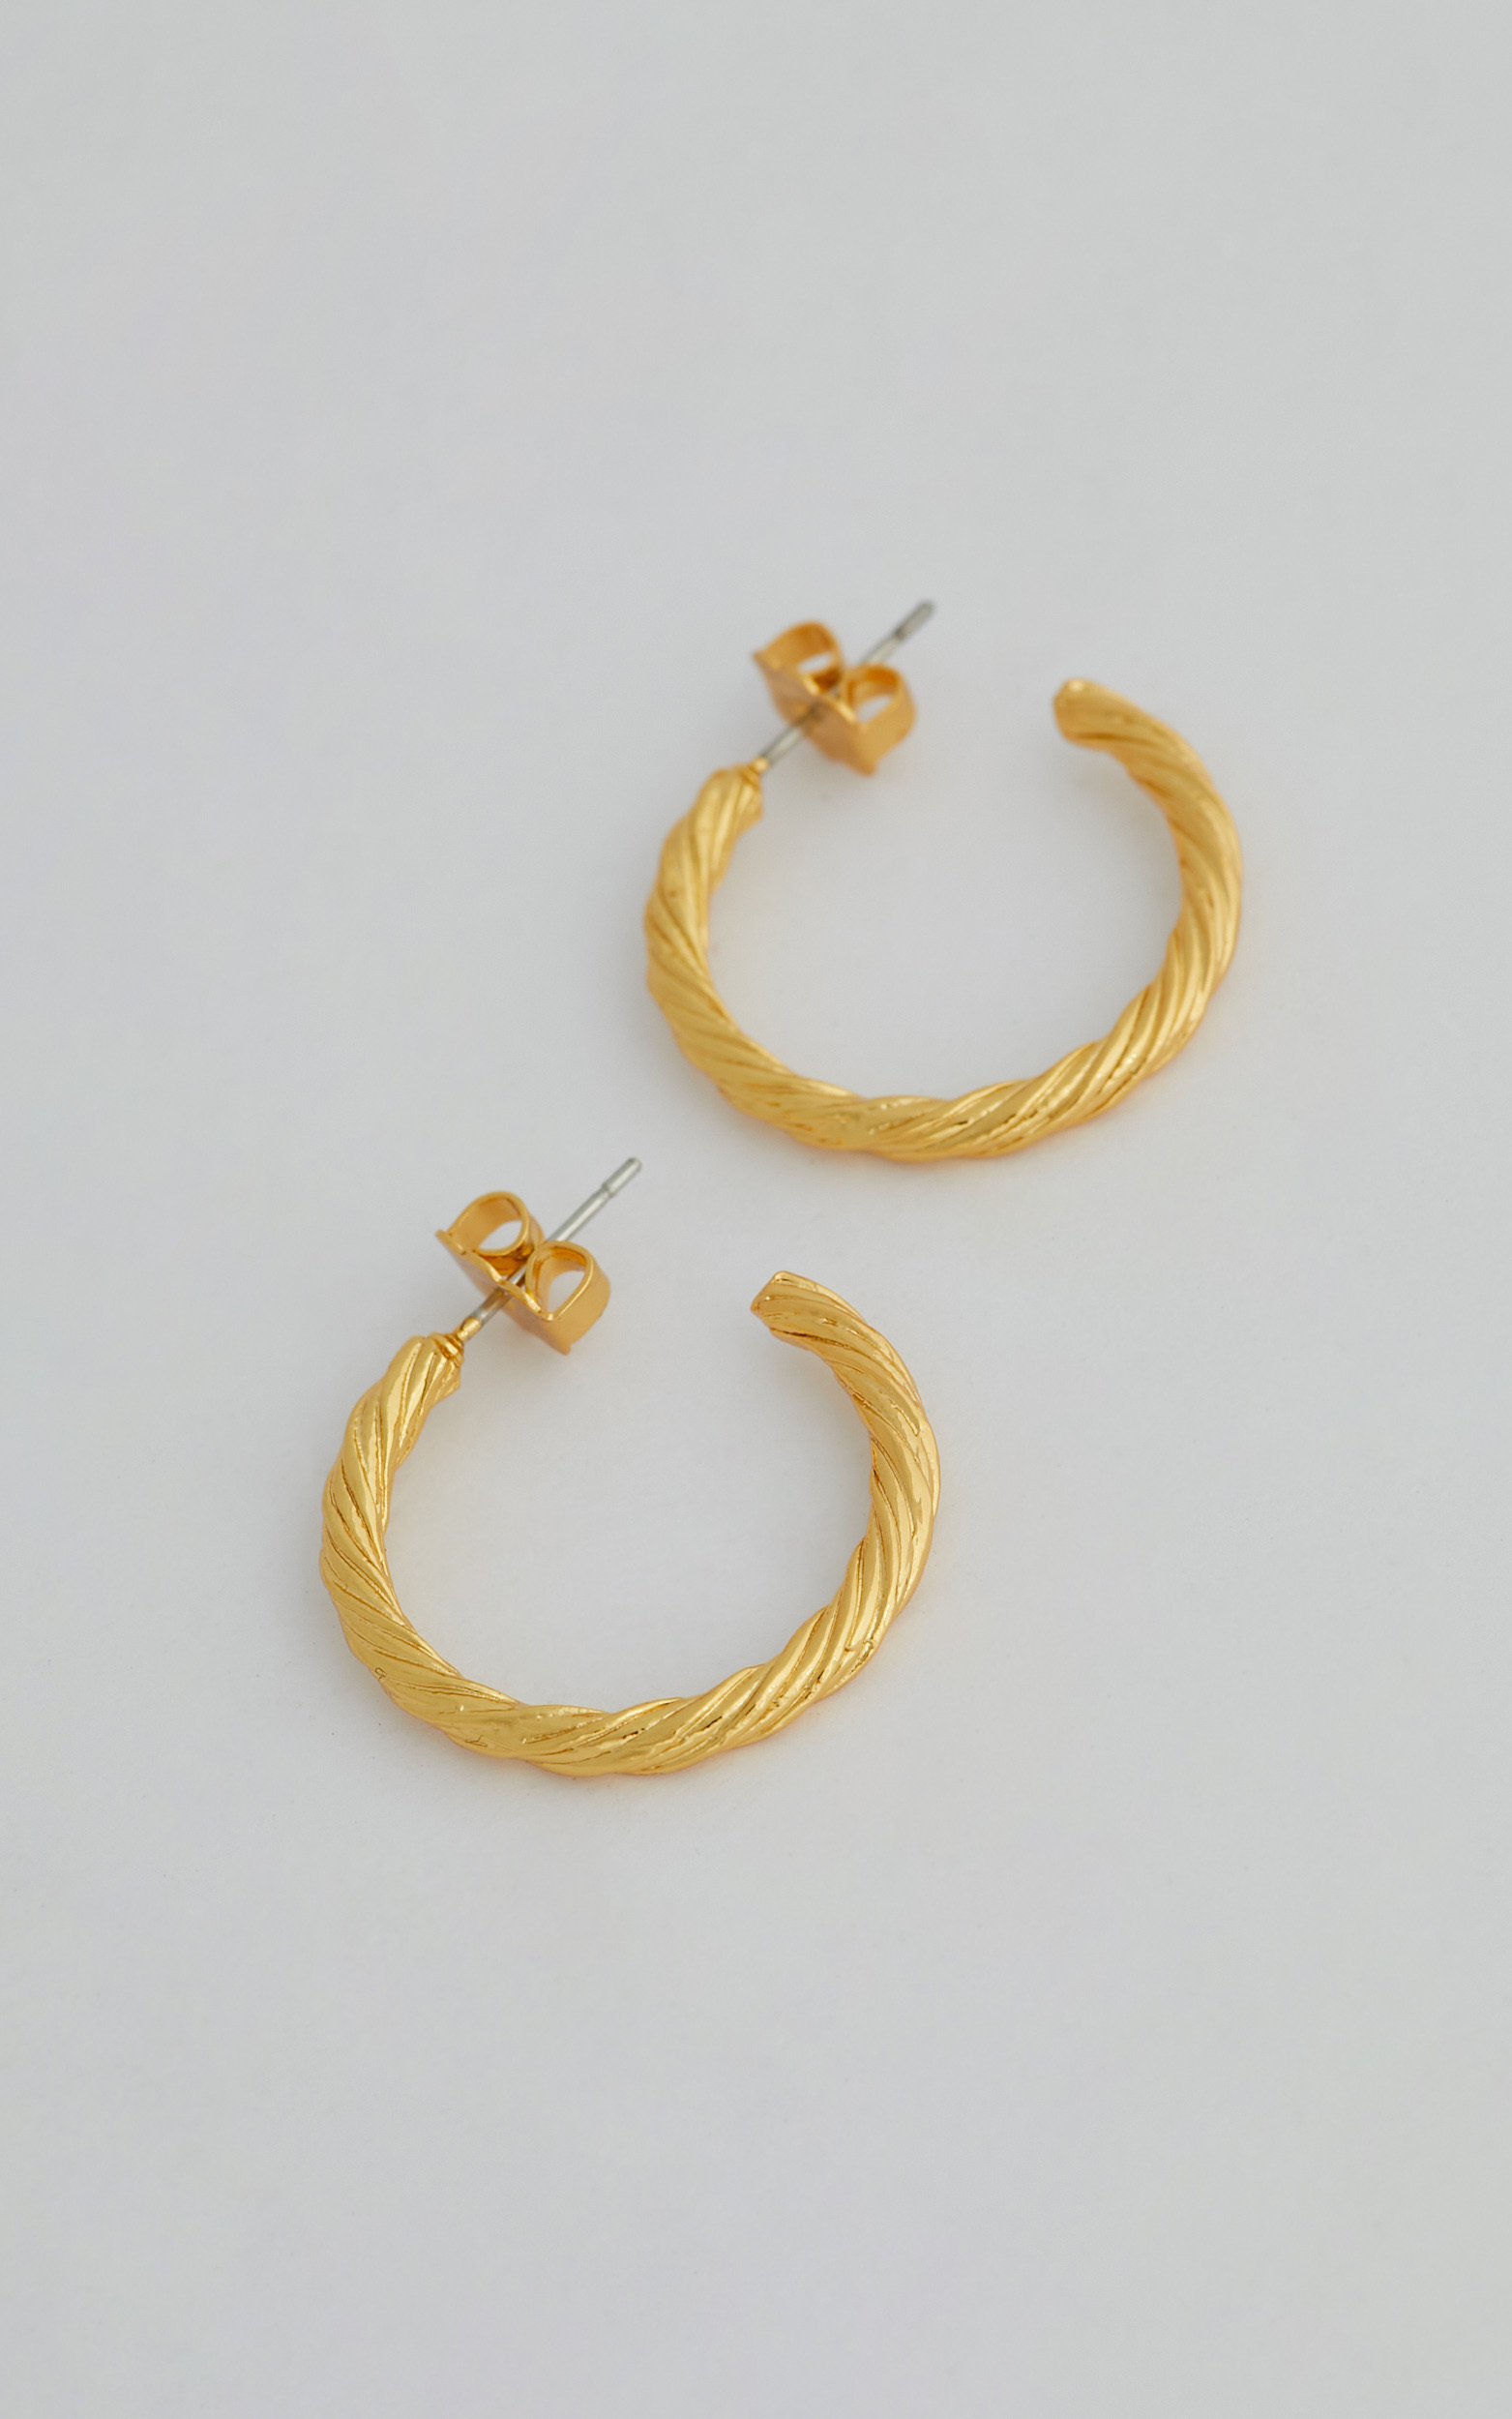 LEGACY HOOP EARRINGS in Gold - NoSize, GLD1, hi-res image number null